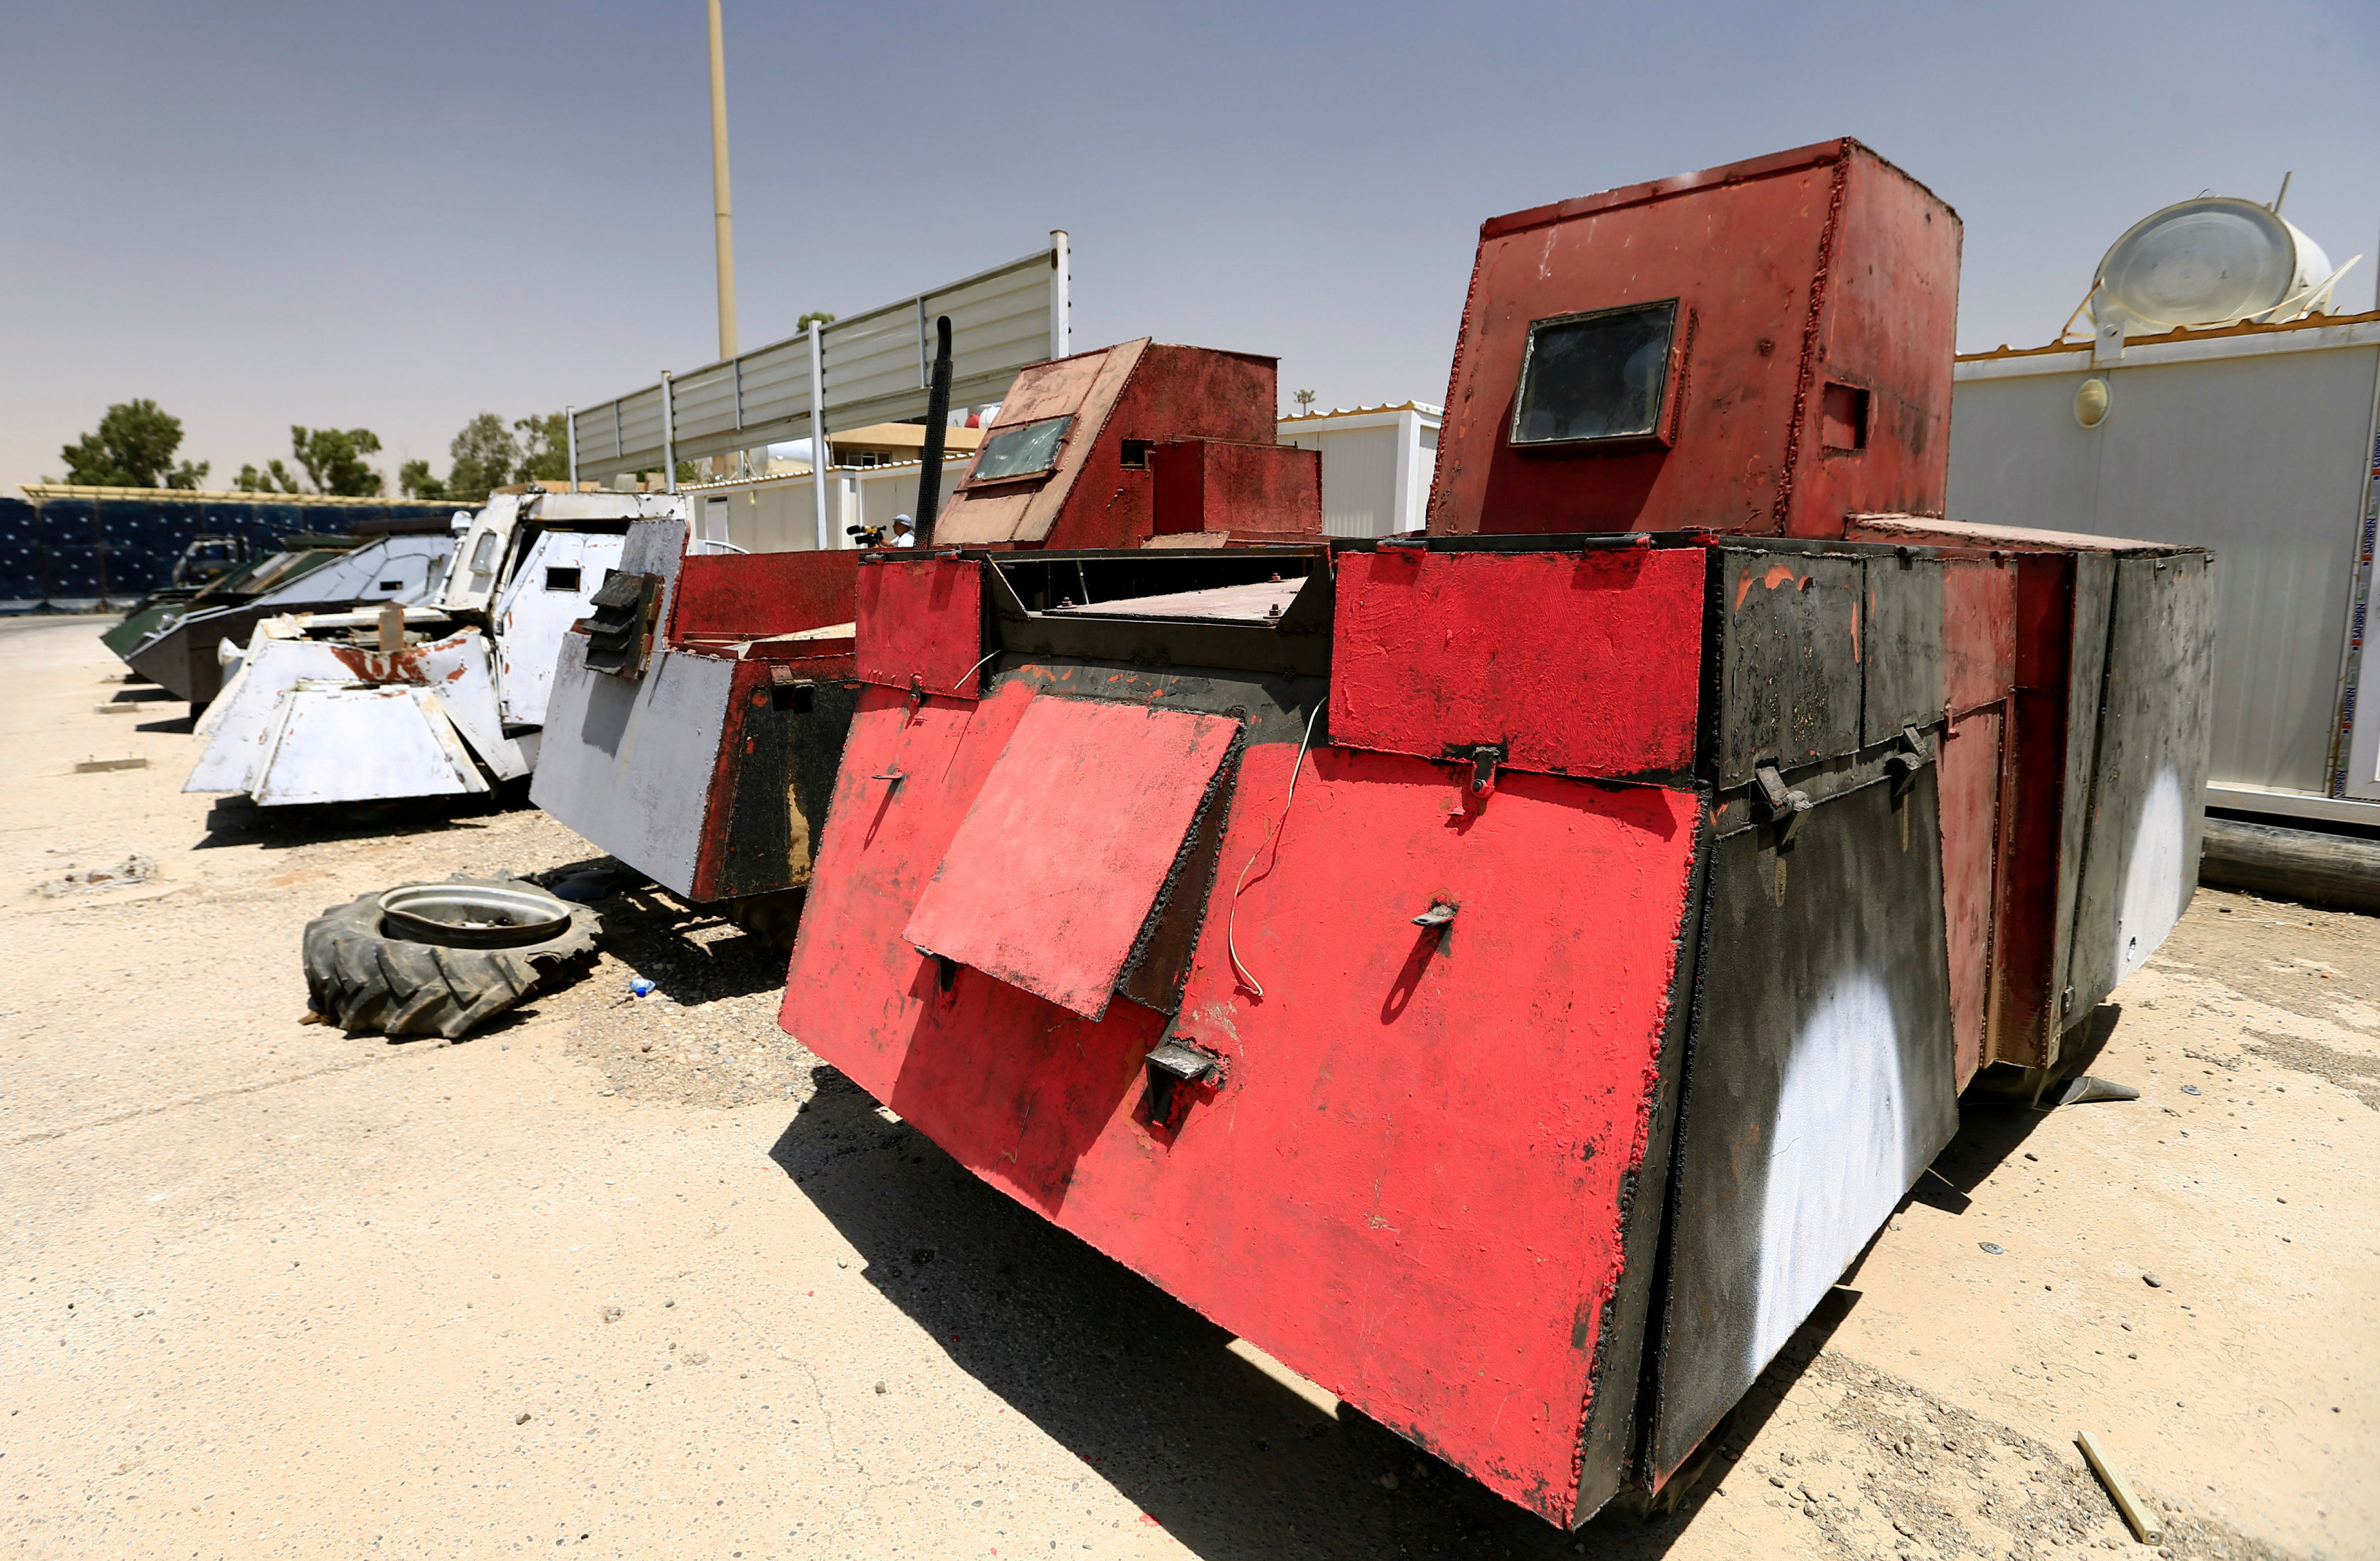 Vehicles used for suicide car bombings, made by Islamic State militants, are seen at Federal Police Headquarters after being confiscated in Mosul, Iraq July 13, 2017